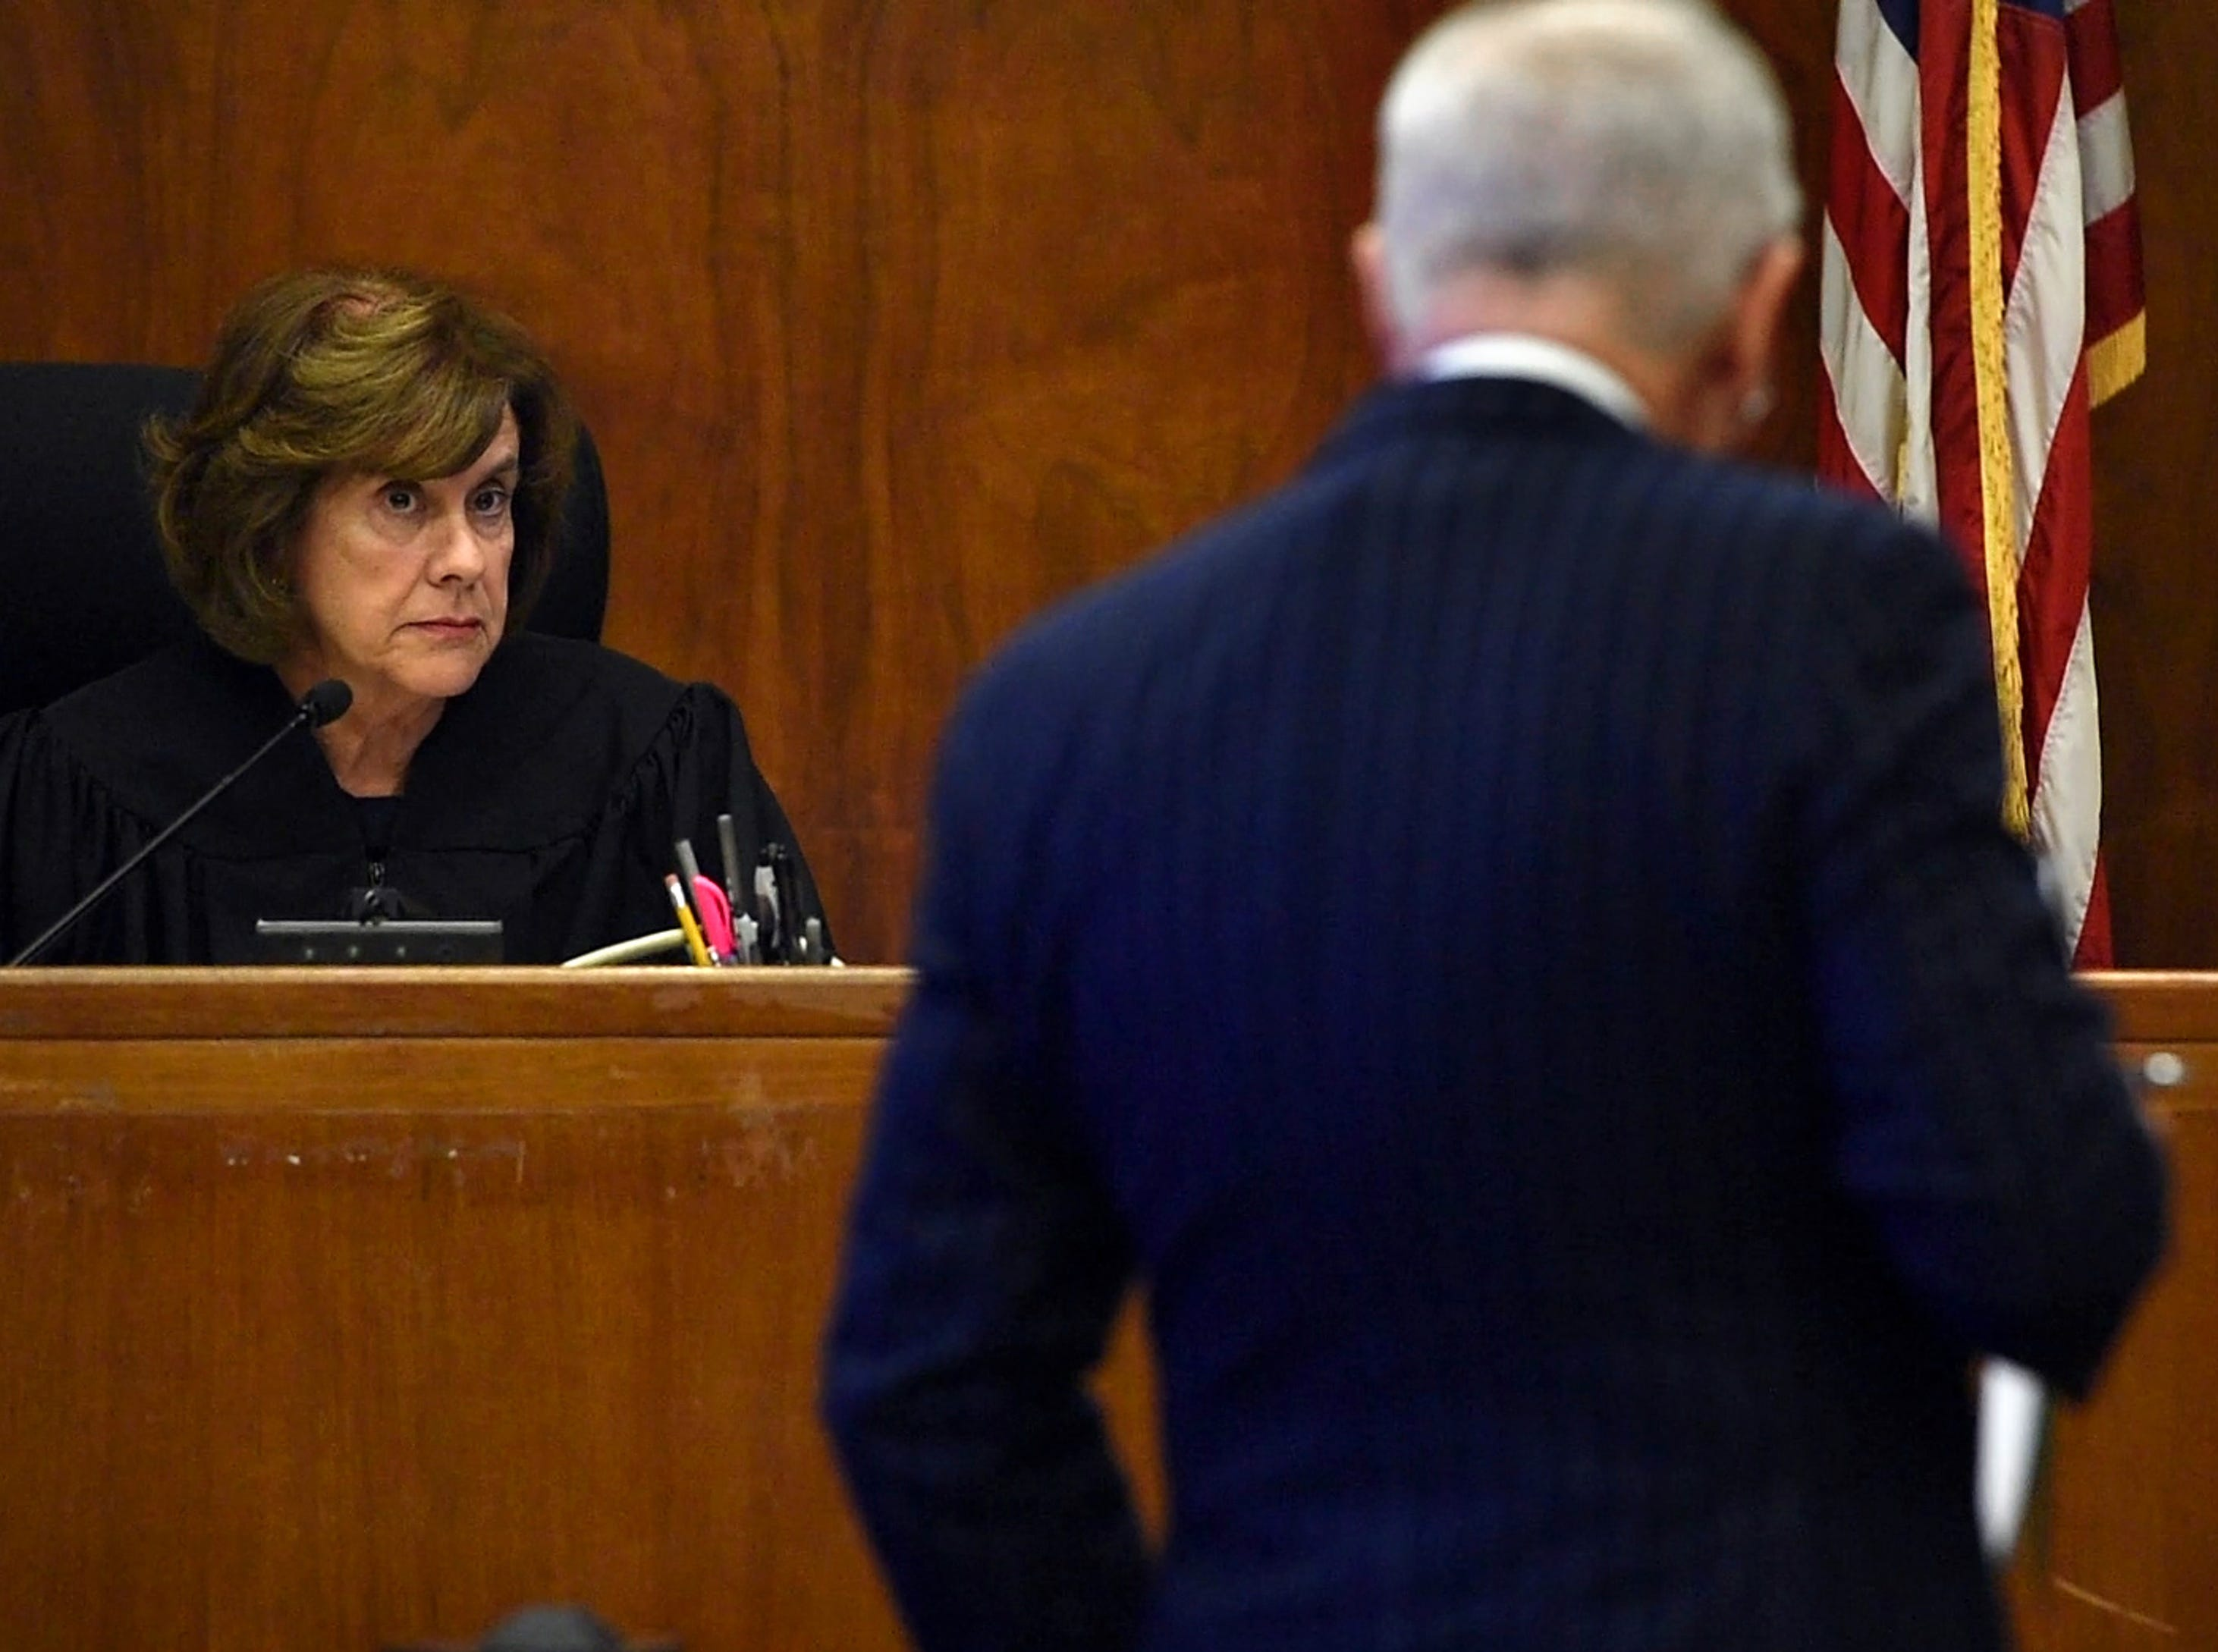 Jared Clackner, of Denville, is on trial in Bergen County Superior Court for killing his friend William Henning after a ZZ Top concert in 2015. Clackner is charged with aggravated manslaughter in the death of Henning. Judge Susan Steele listens while Brian Neary, attorney for Clackner, cross examines forensic pathologist and former asst. Bergen County Medical Examiner Dr. Jennifer Swartz. Swartz performed the autopsy on William Henning in March 2015. October 17, 2018.